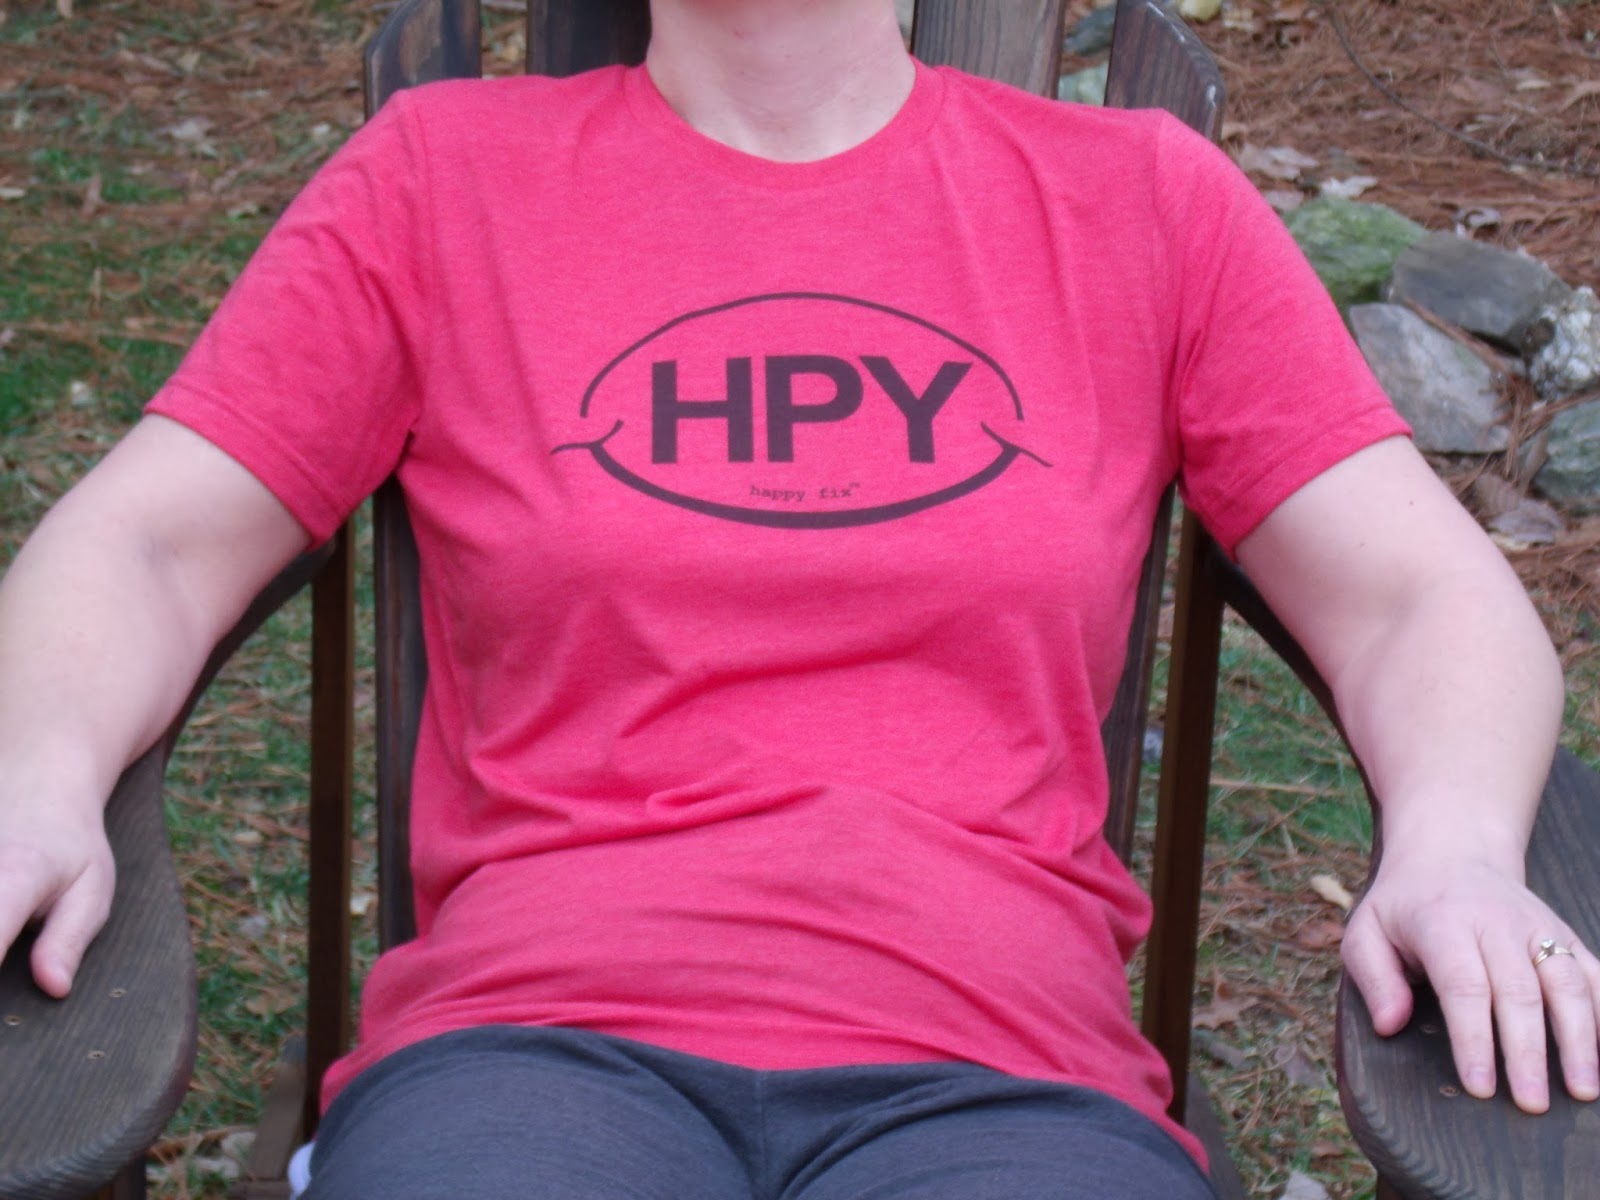 Get Your Happy Fix™ Made in USA Tee - $21.99!